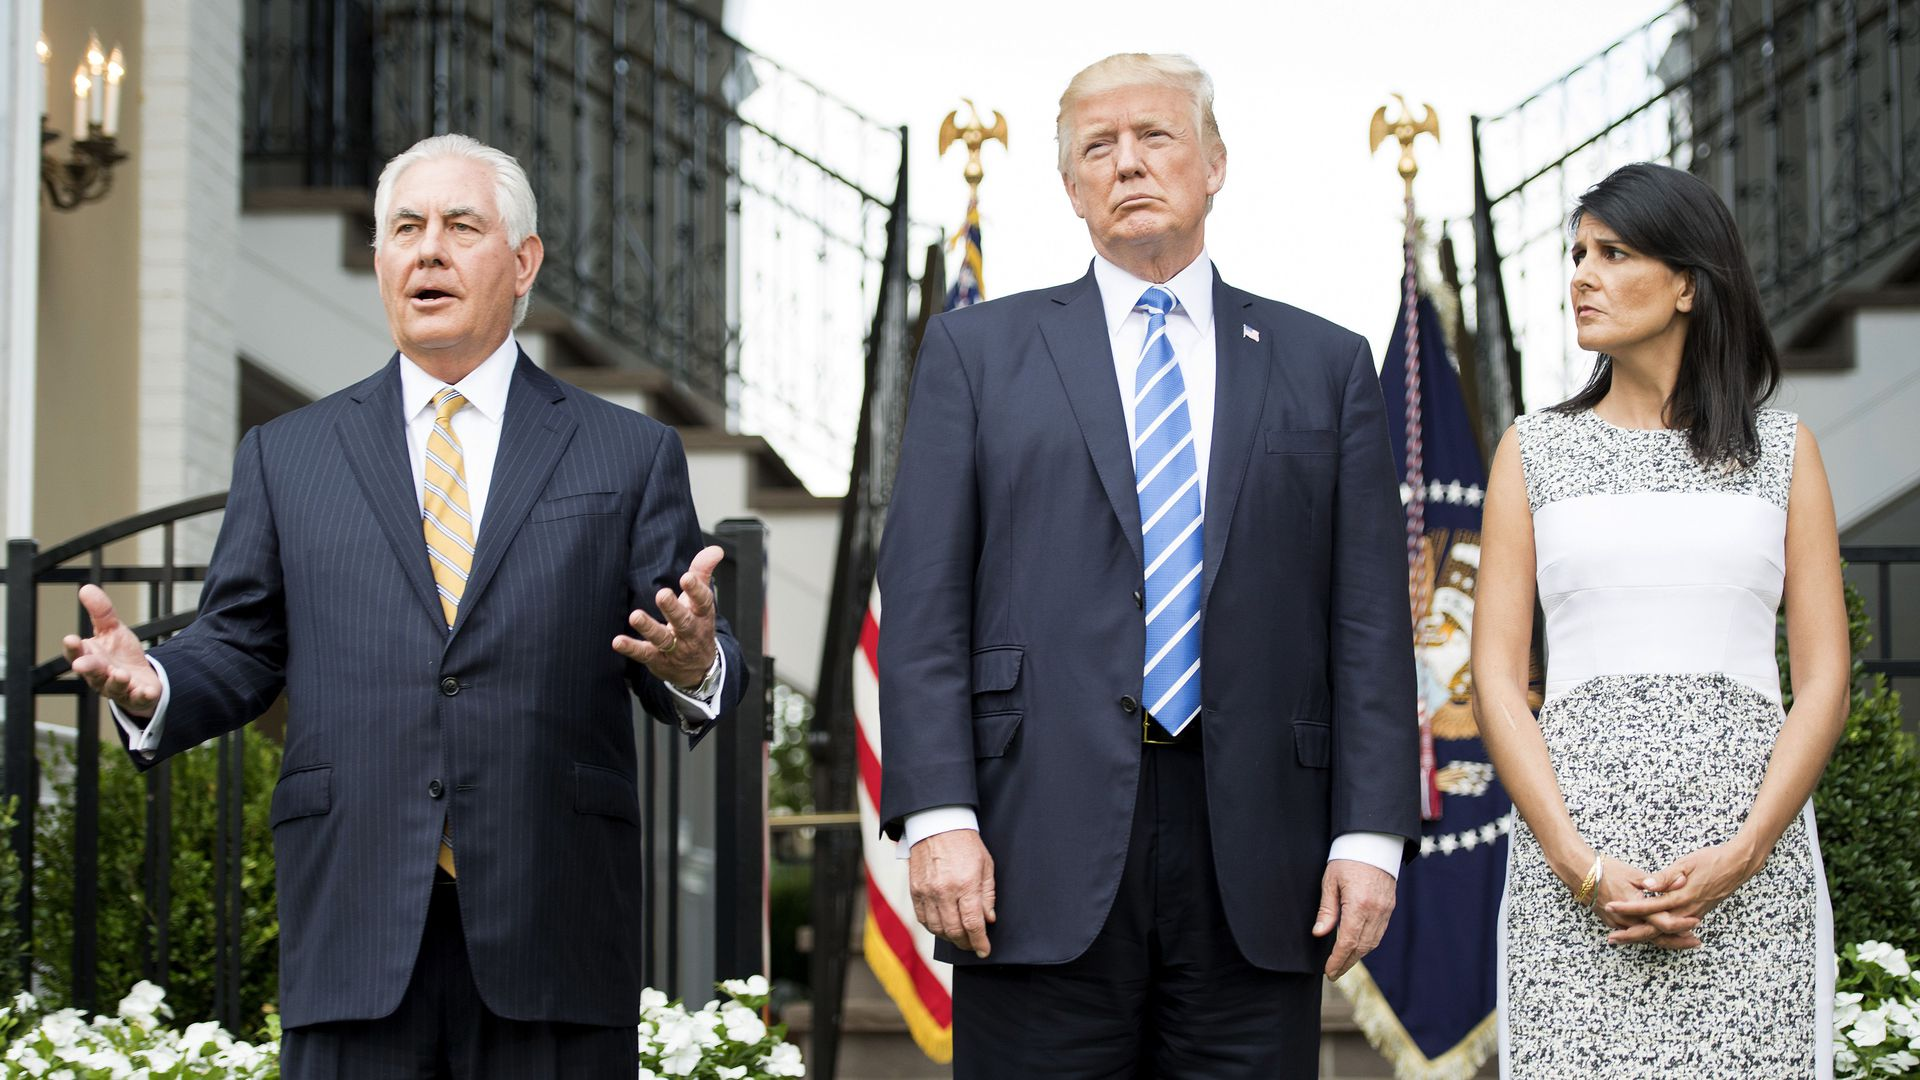 Secretary of State Rex Tillerson (L) speaks to the press with US President Donald Trump (C) and US Ambassador to the United Nations Nikki Haley (R) on August 11, 2017